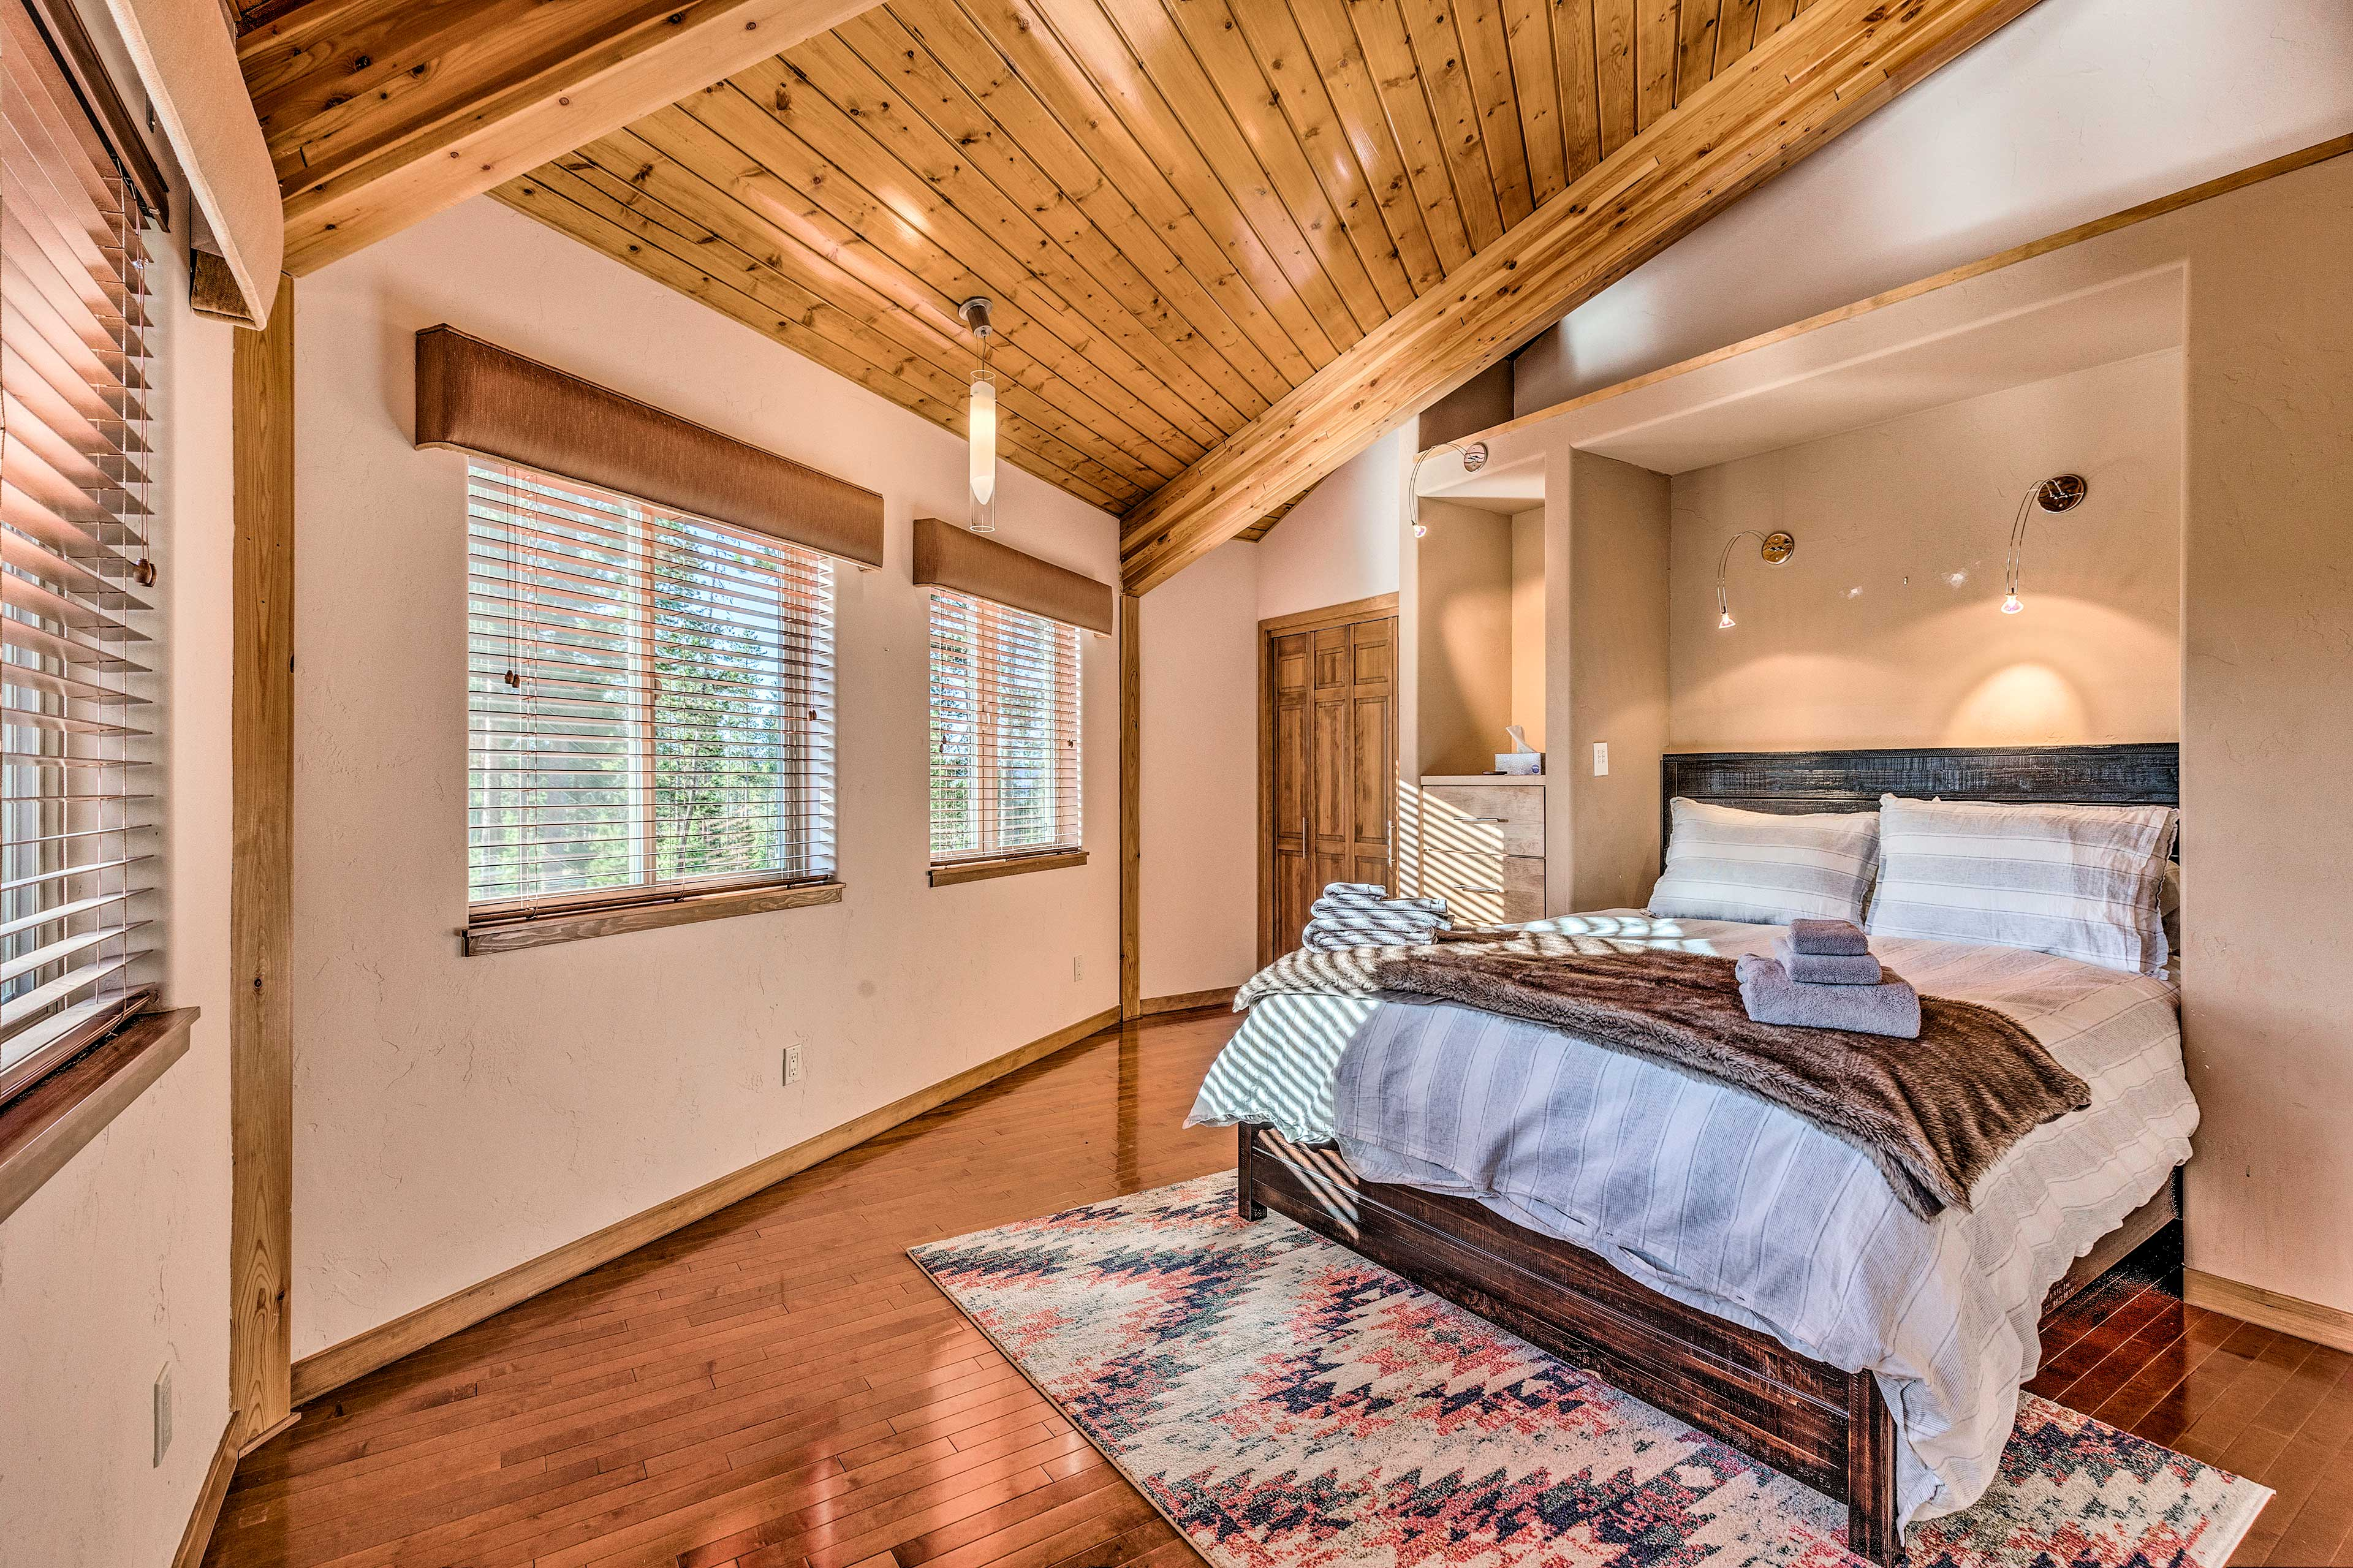 You'll find a queen bed in this room.